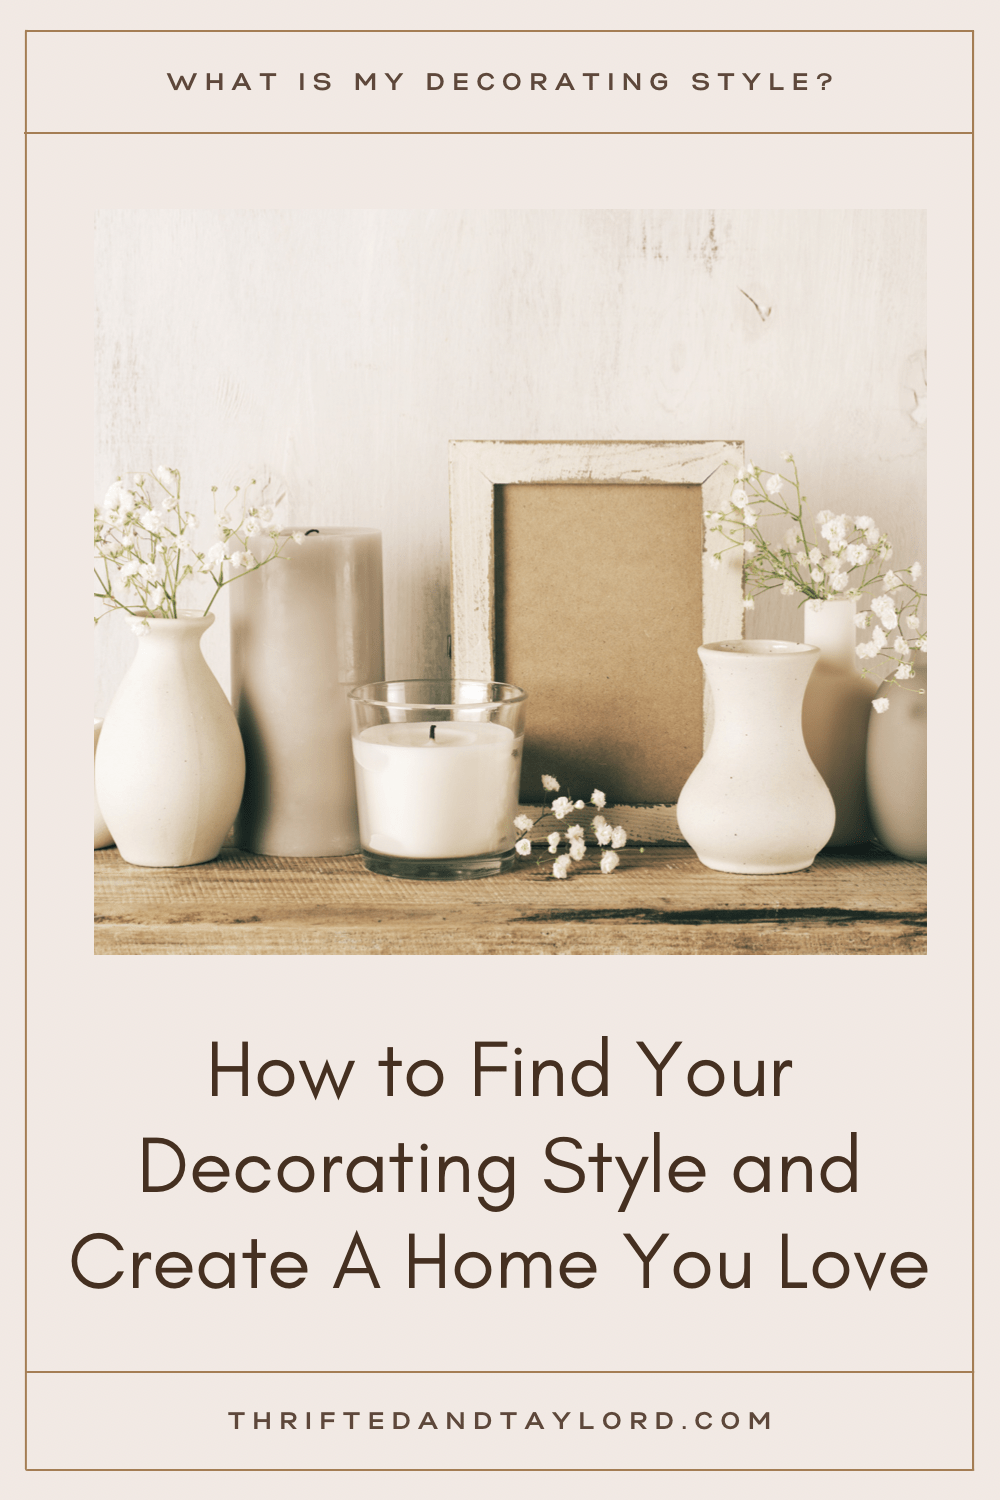 """Find out the answer to your own """"What is my decorating style?"""" question and learn how to create a home you love. Photo shoes an assortment os vases in netural colors, some have small flowers, there is a candle in a glass jar and a tall gray candle,, and a white distressed photo frame all on a wood shelf."""